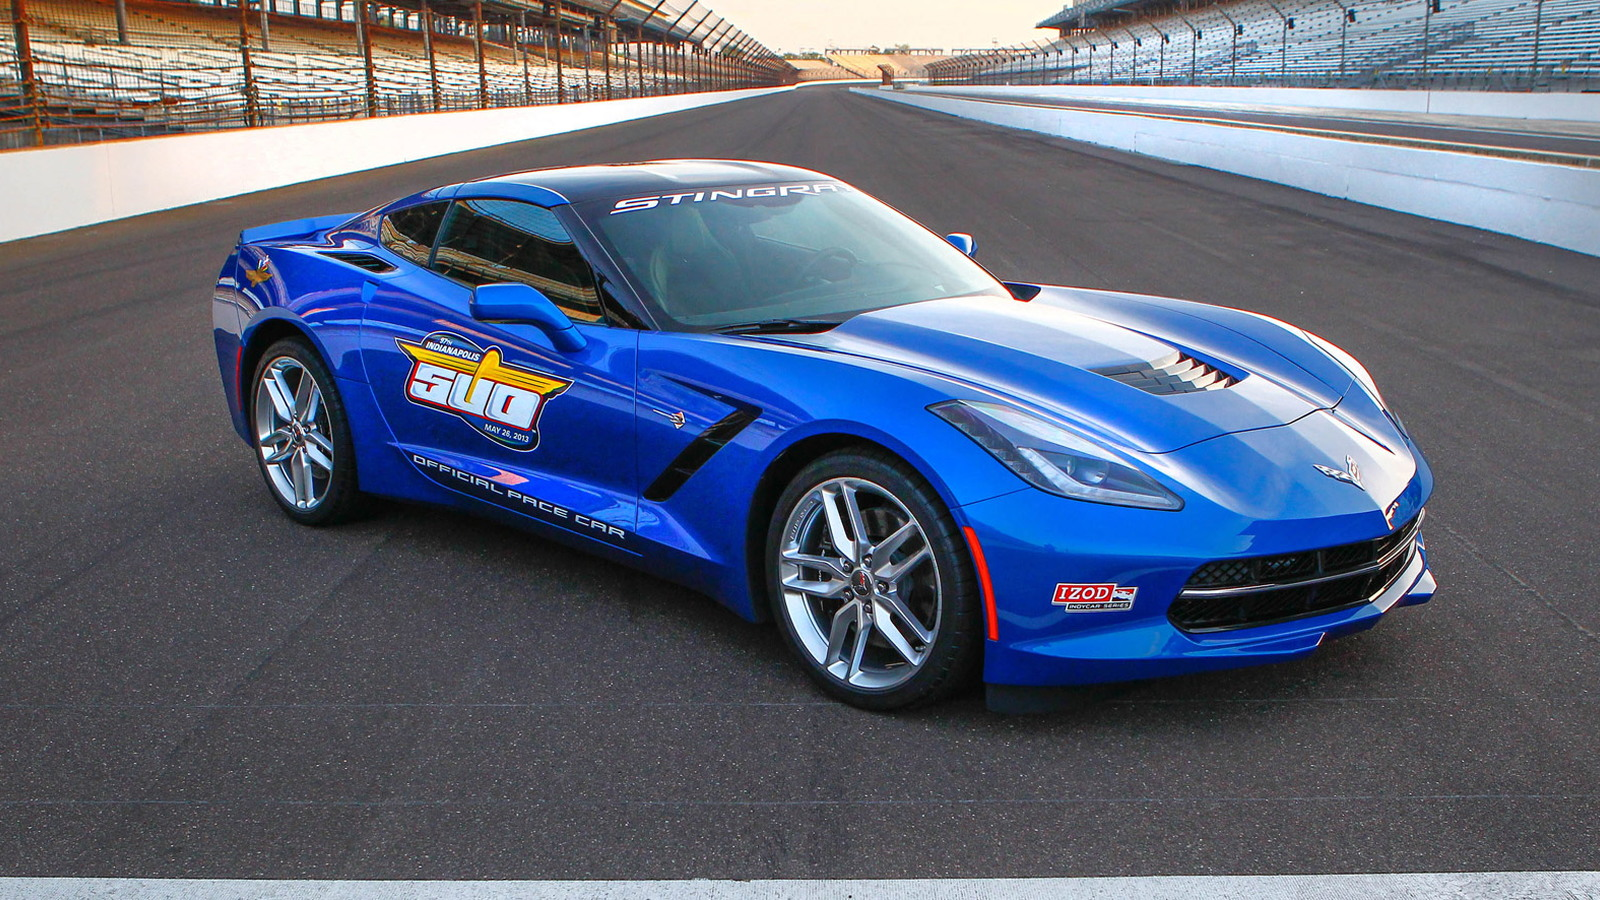 2014 Chevrolet Corvette Stingray - 2013 Indianapolis 500 Pace Car